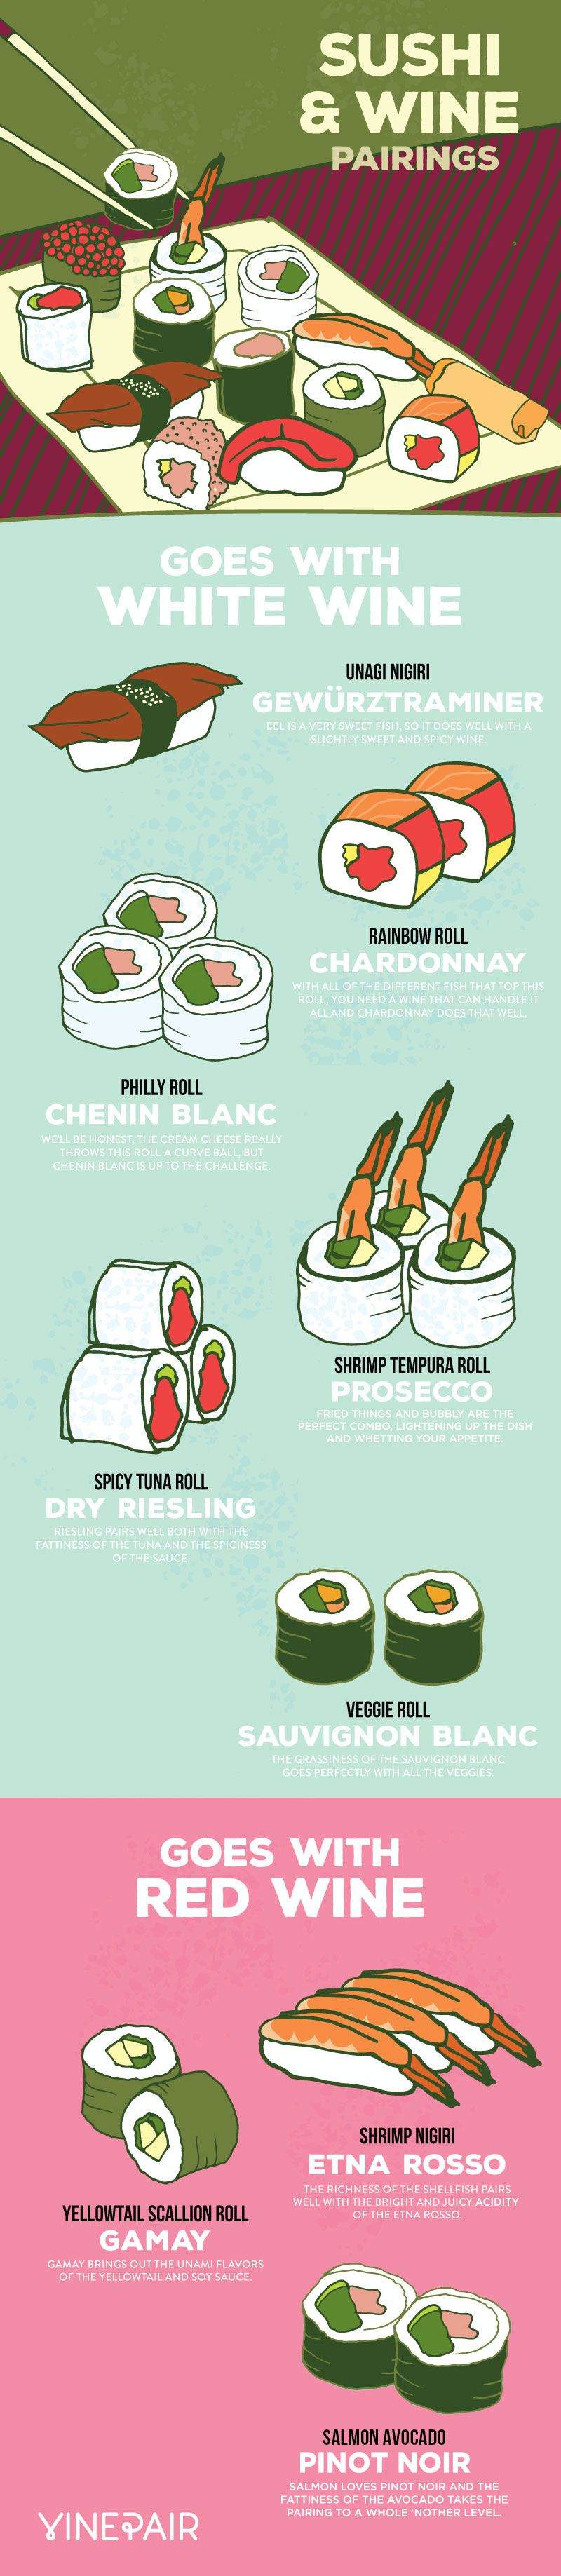 The best way to pair your wine and sushi.